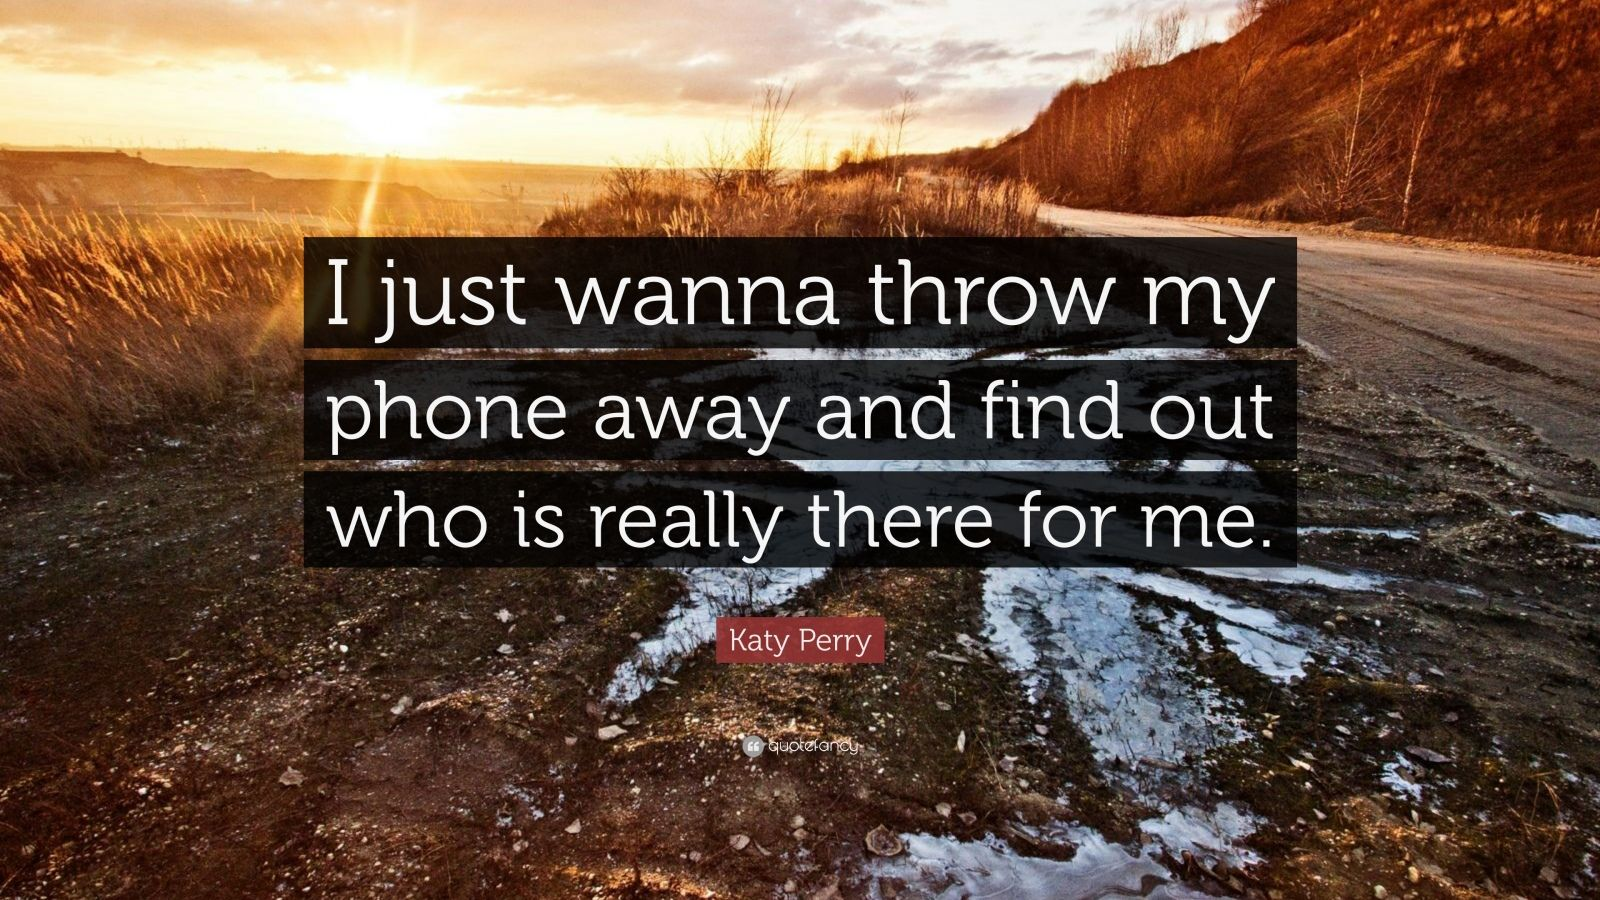 """Katy Perry Quote: """"I just wanna throw my phone away and find out who is really there for me."""""""